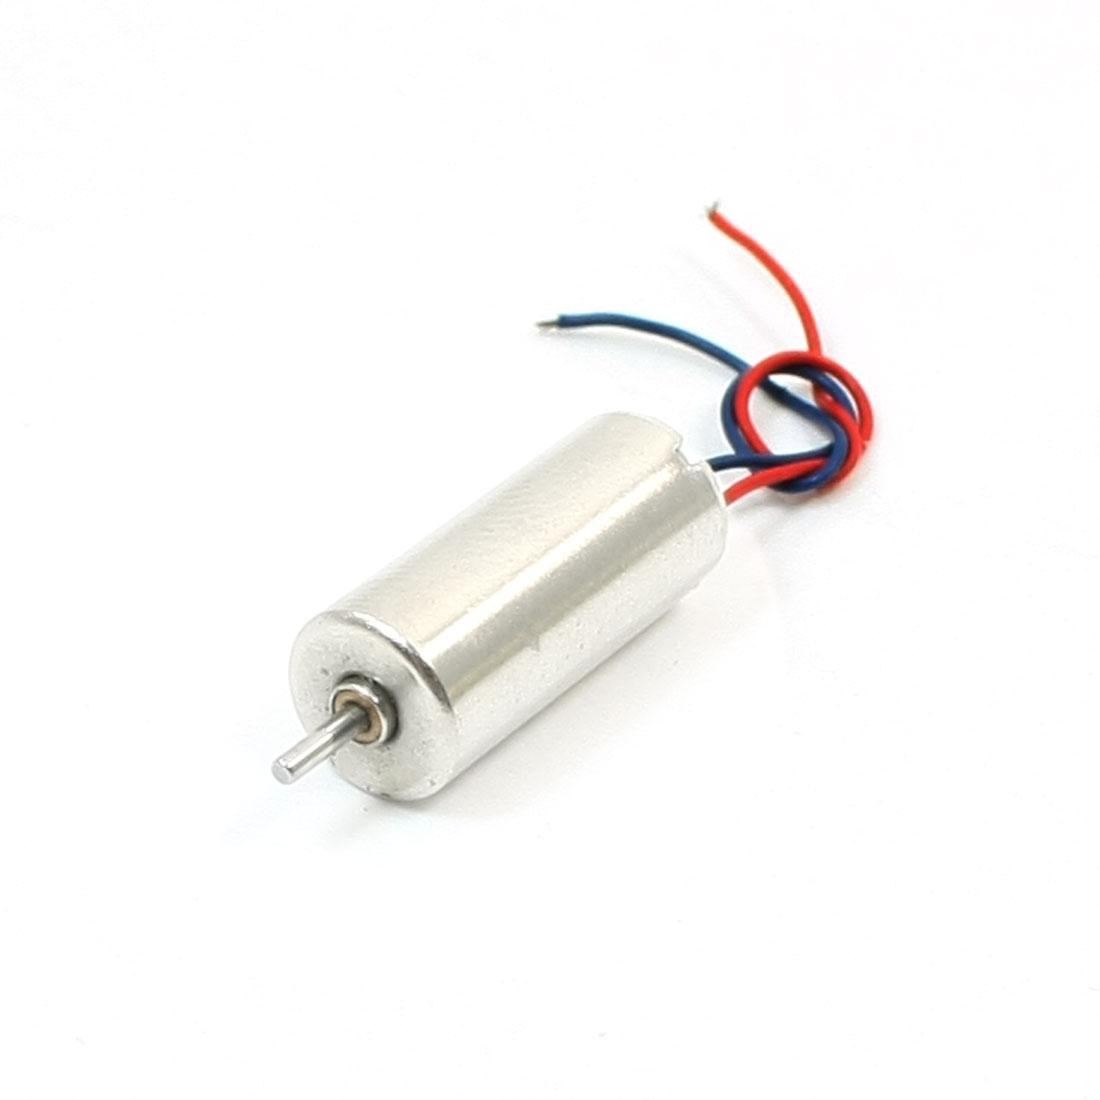 Two-Wires-3V-30000rpm-Cyclinder-Coreless-Motor-for-DIY-RC-Helicopter